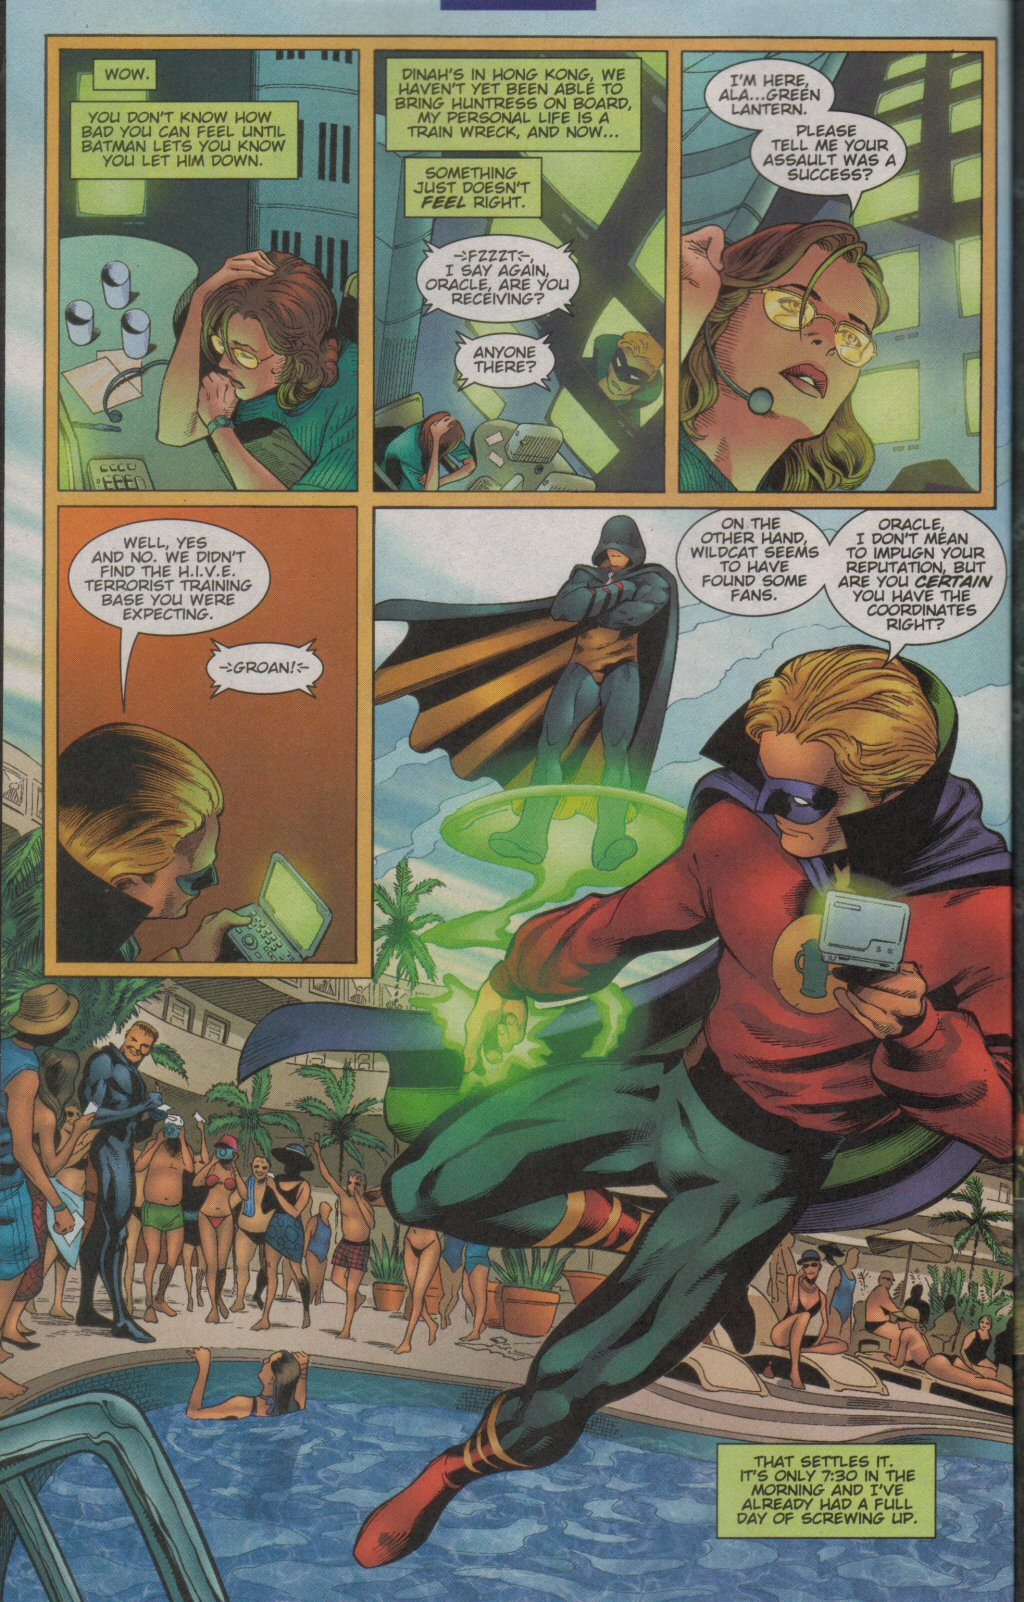 062 12 Oracle Alan Scott Hourman Wildcat.jpg